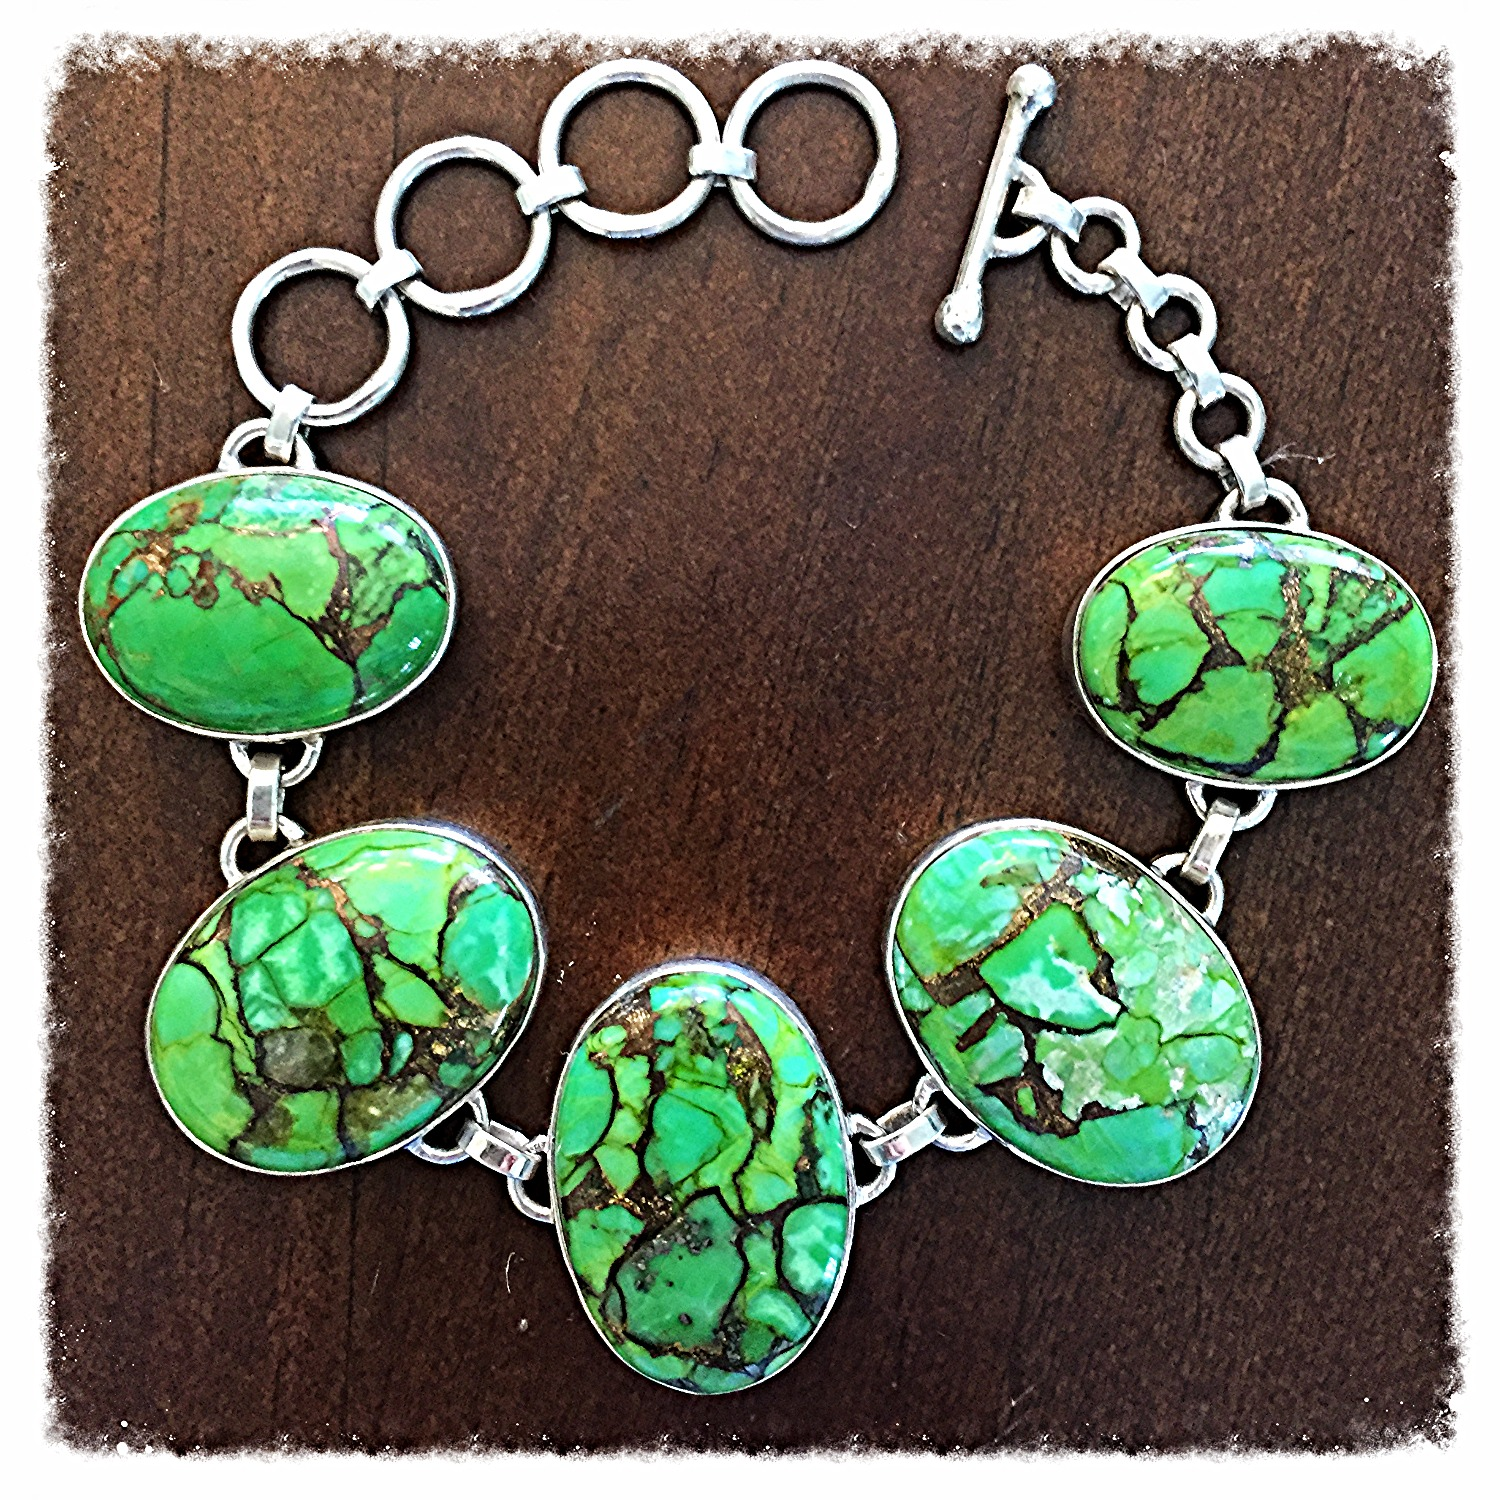 Oval Copper Turquoise Bracelet_edited